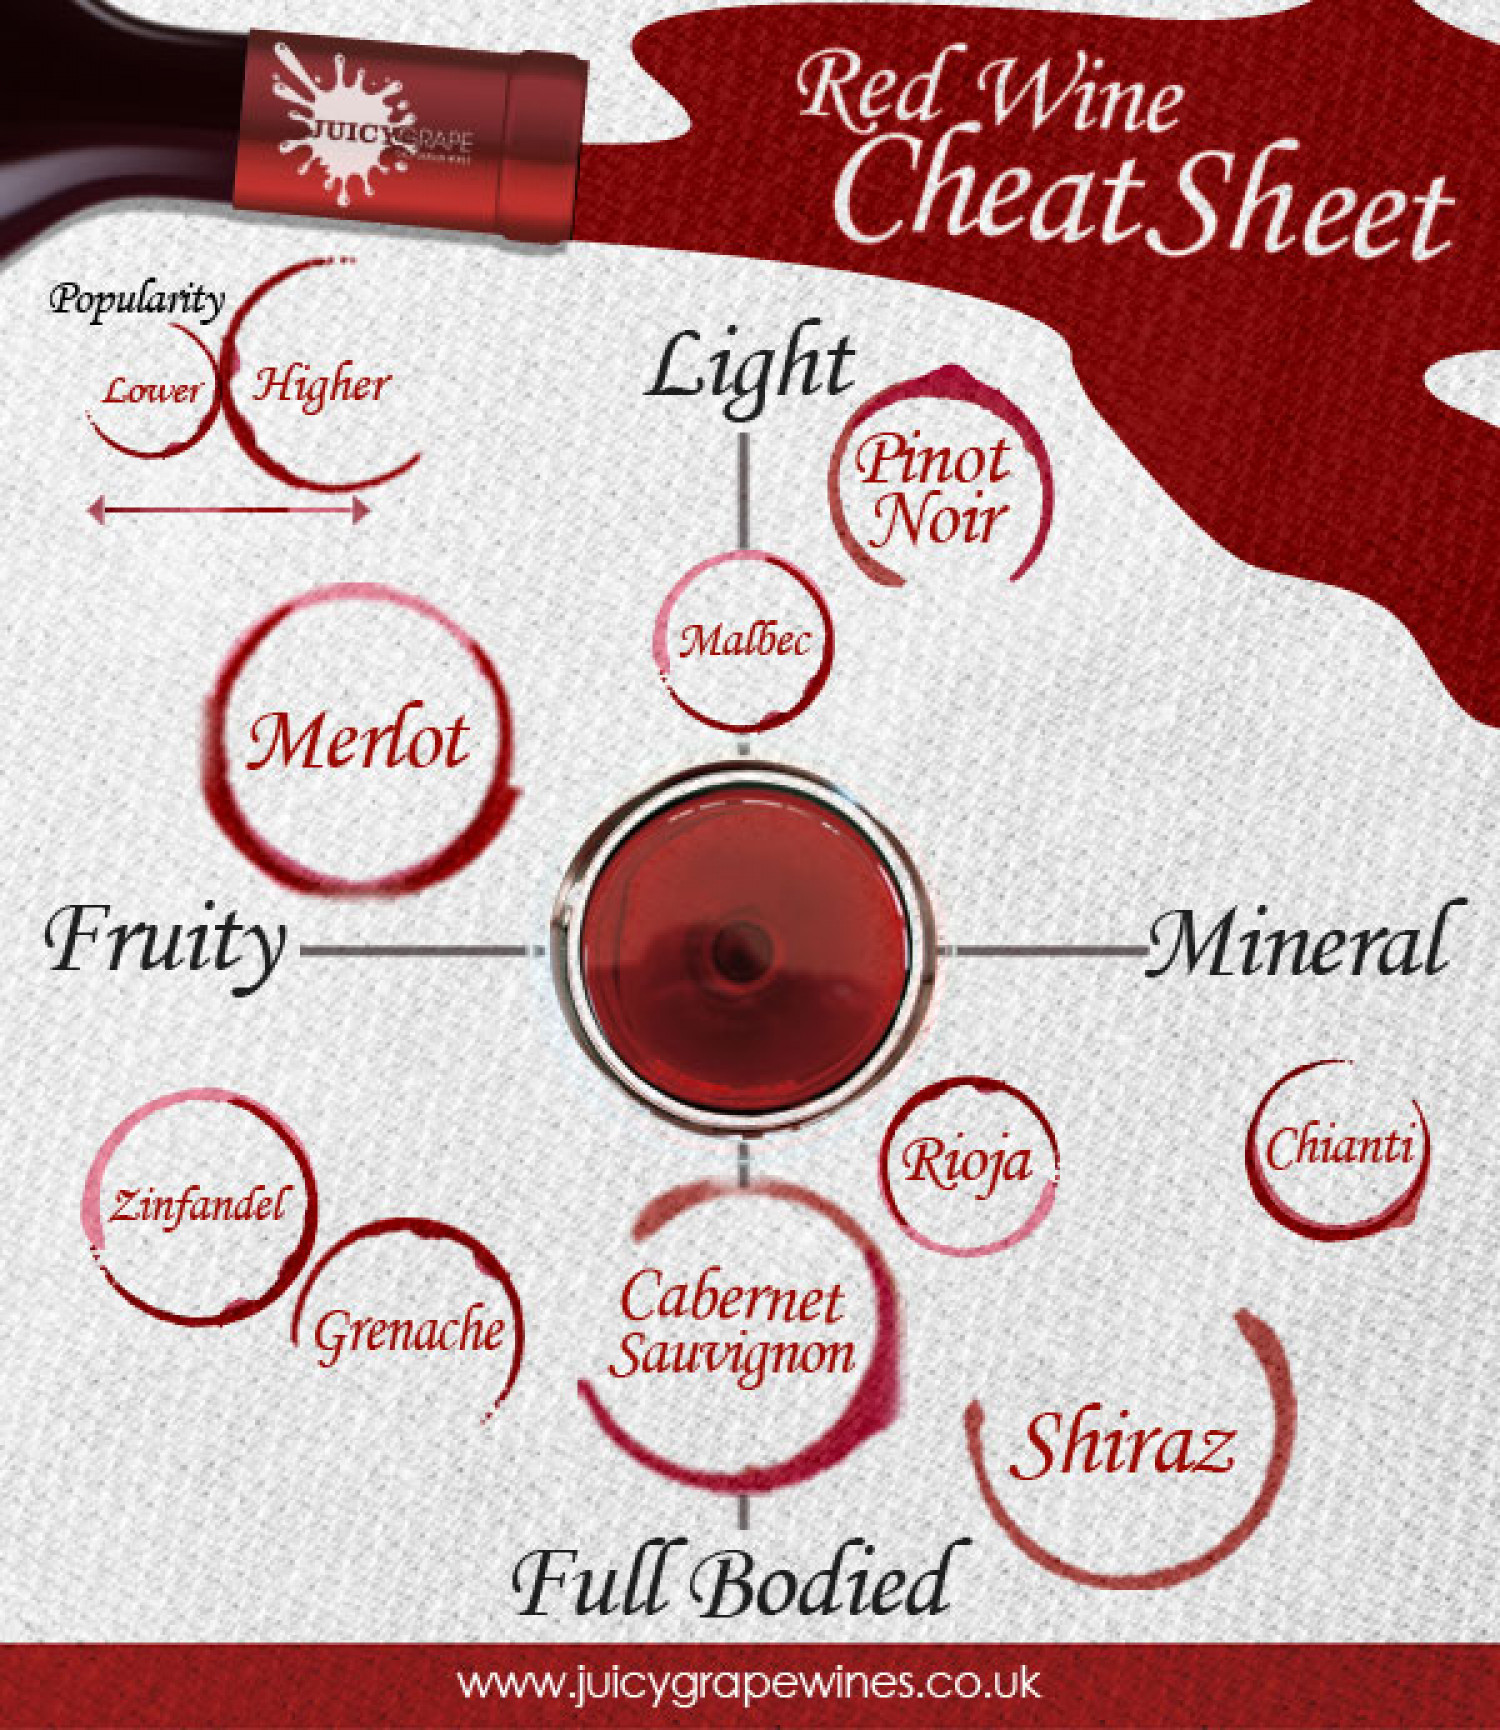 Red Wine Cheat Sheet Infographic